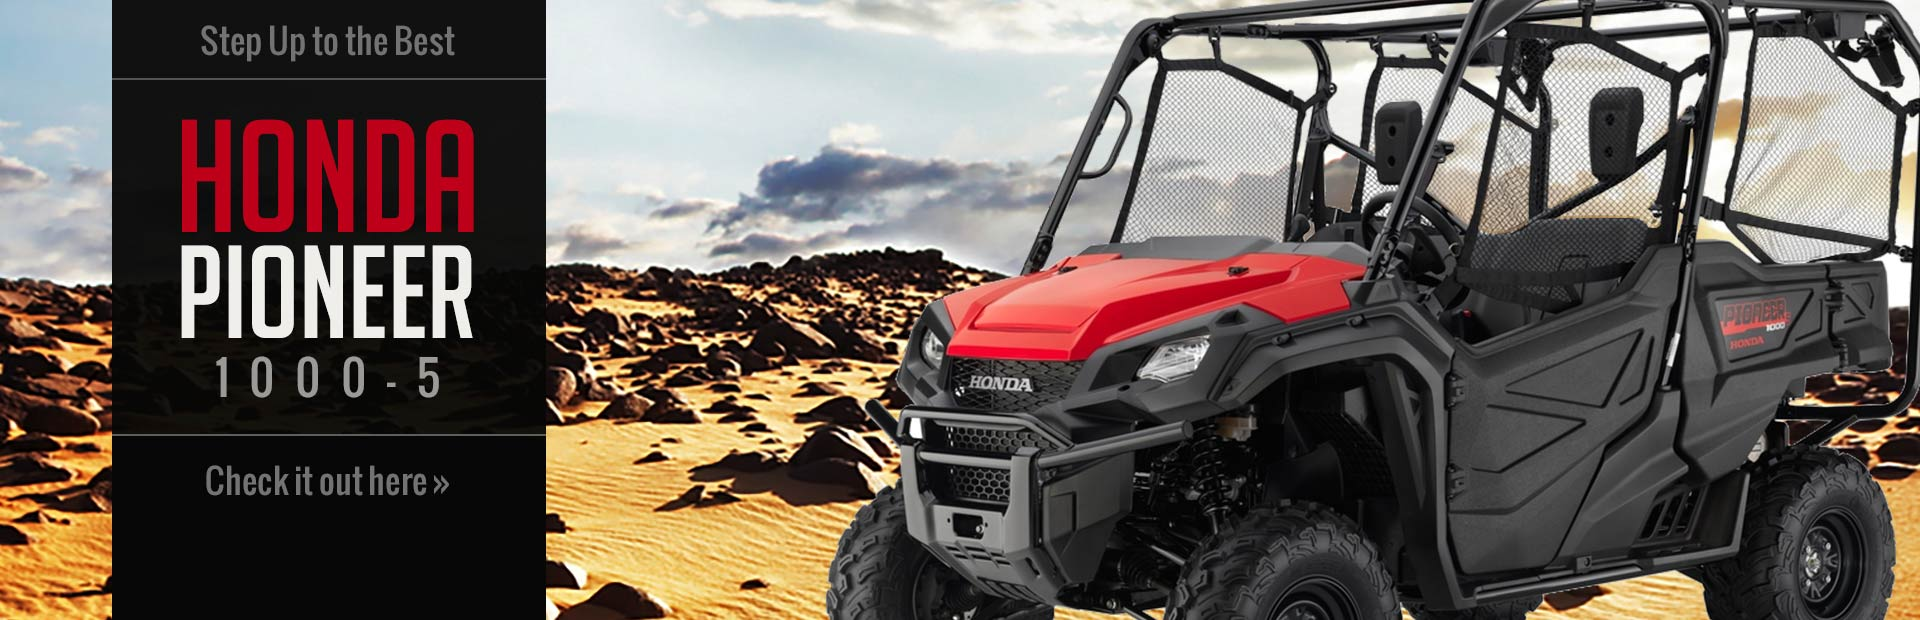 Honda Pioneer 1000-5: Click here to view the model.